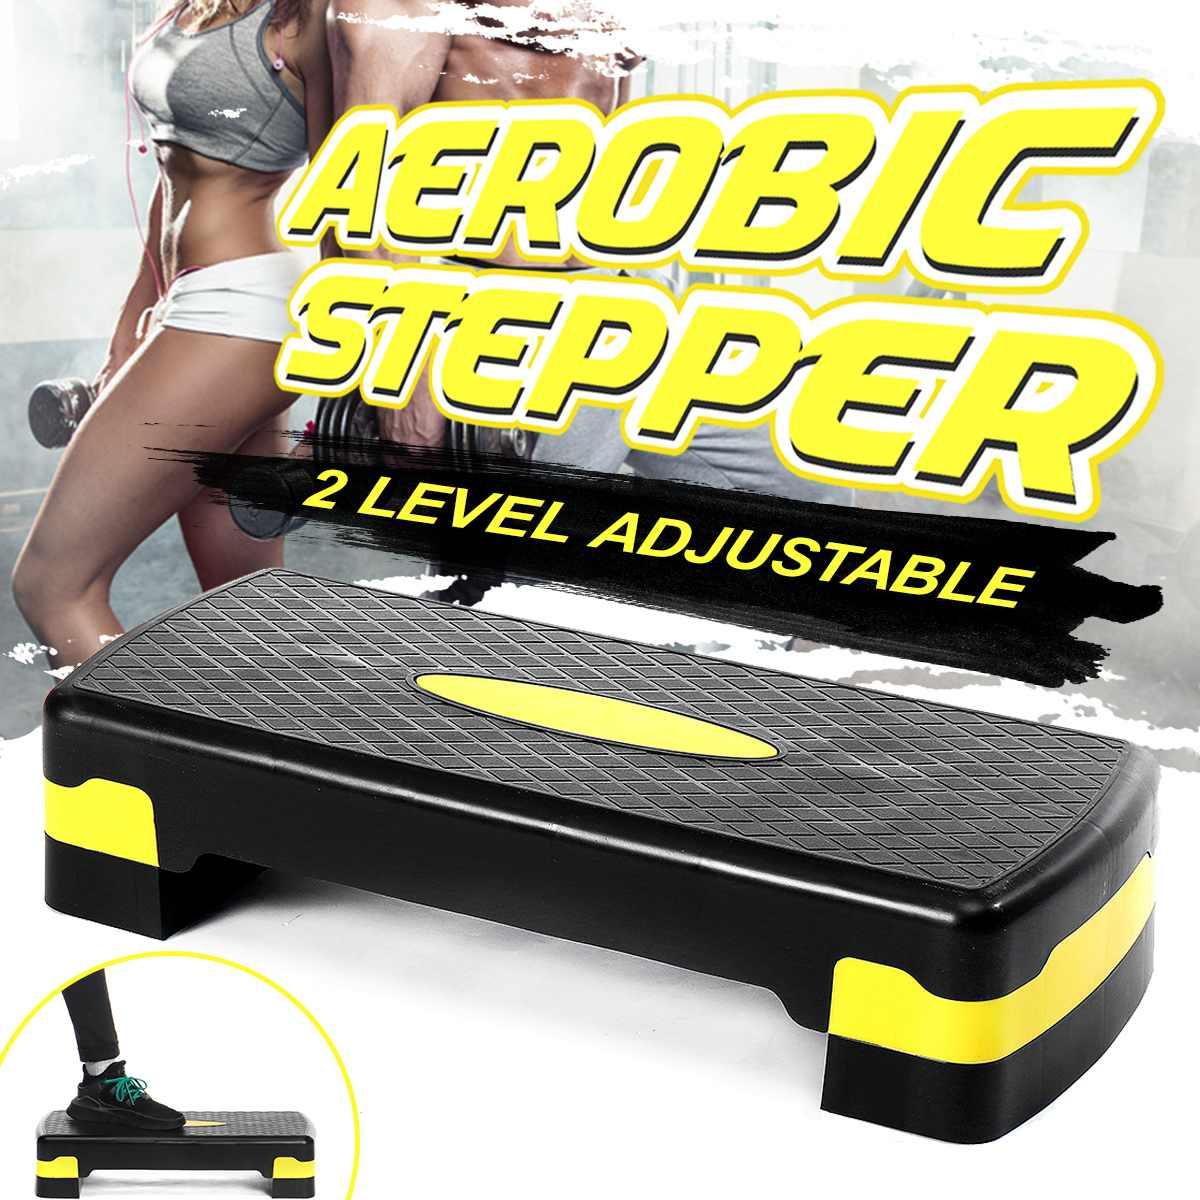 100KG Fitness Aerobic Step Adjustable Non-slip Cardio Yoga Pedal Stepper Gym Workout Exercise Fitness Aerobic Step Equipment